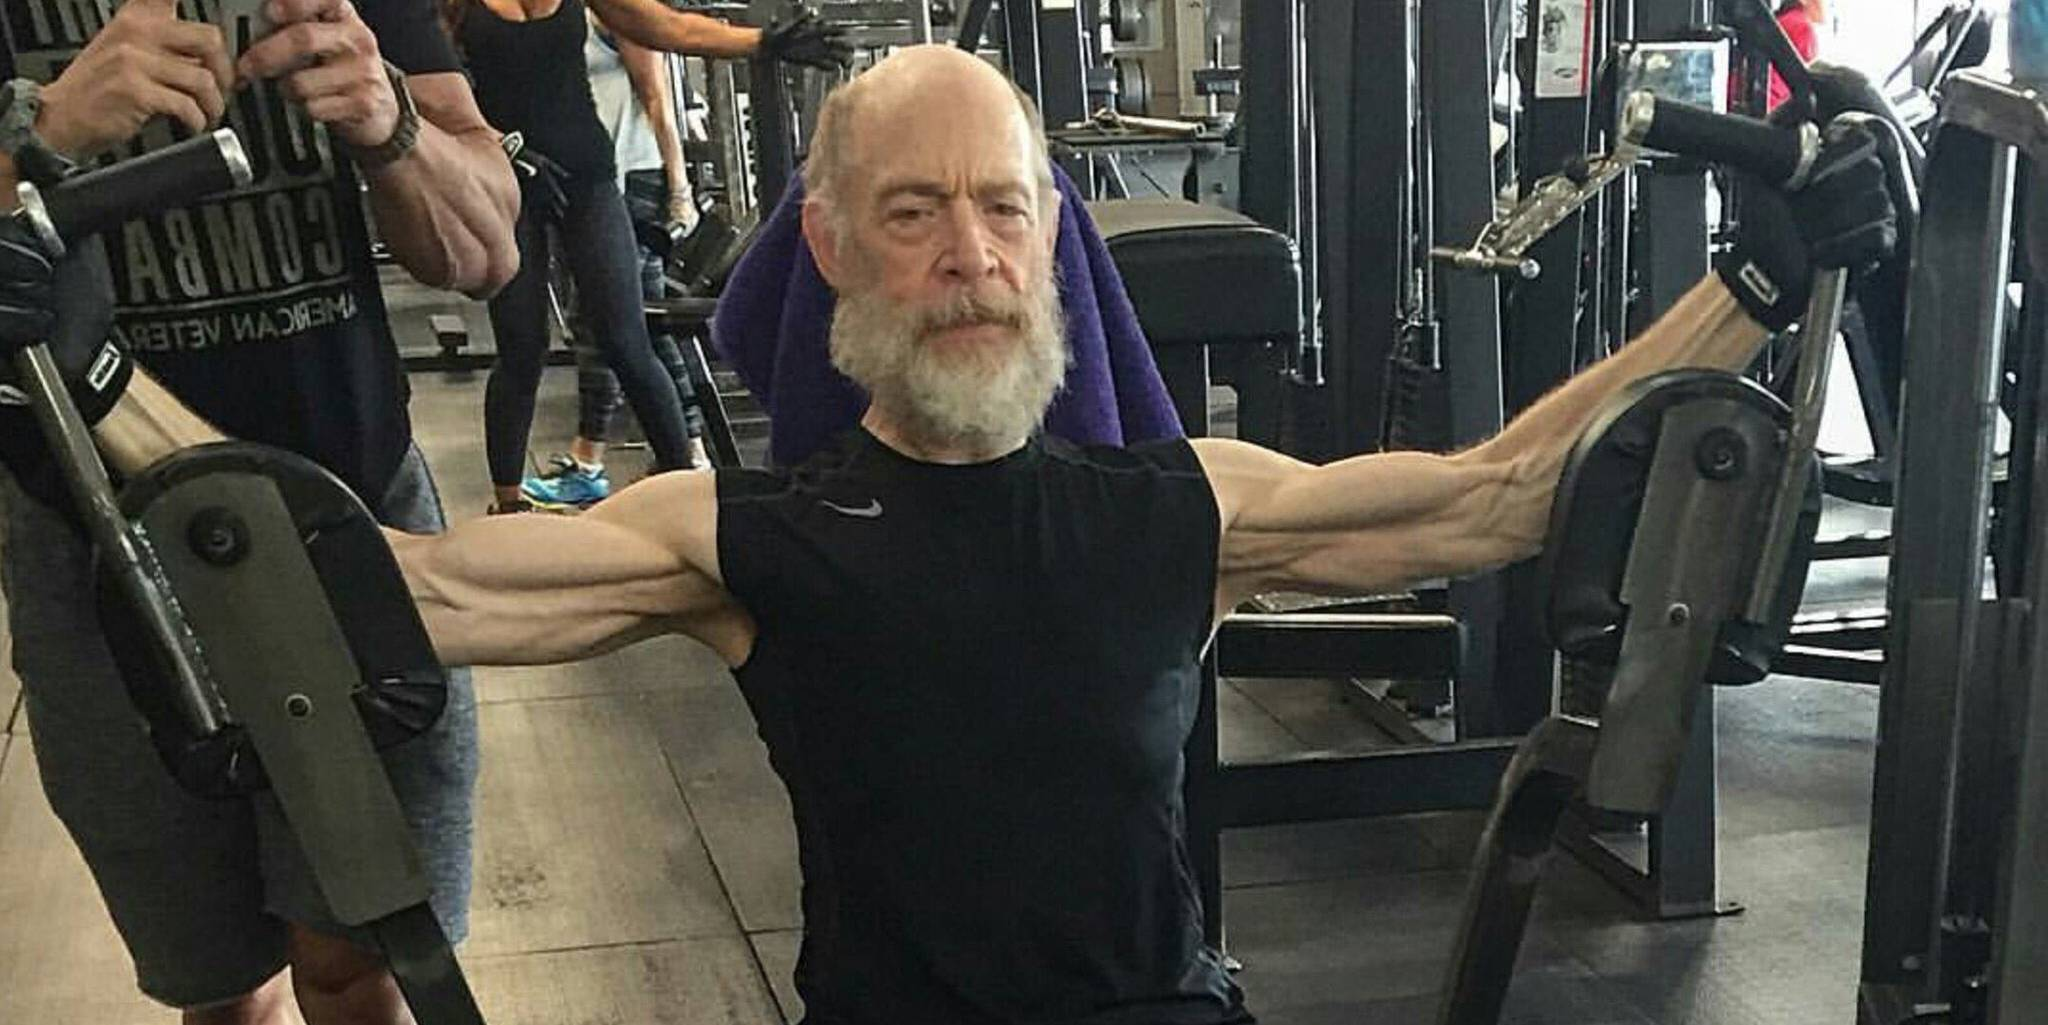 JK Simmons Workout and Diet: How he got Insanely Ripped ...